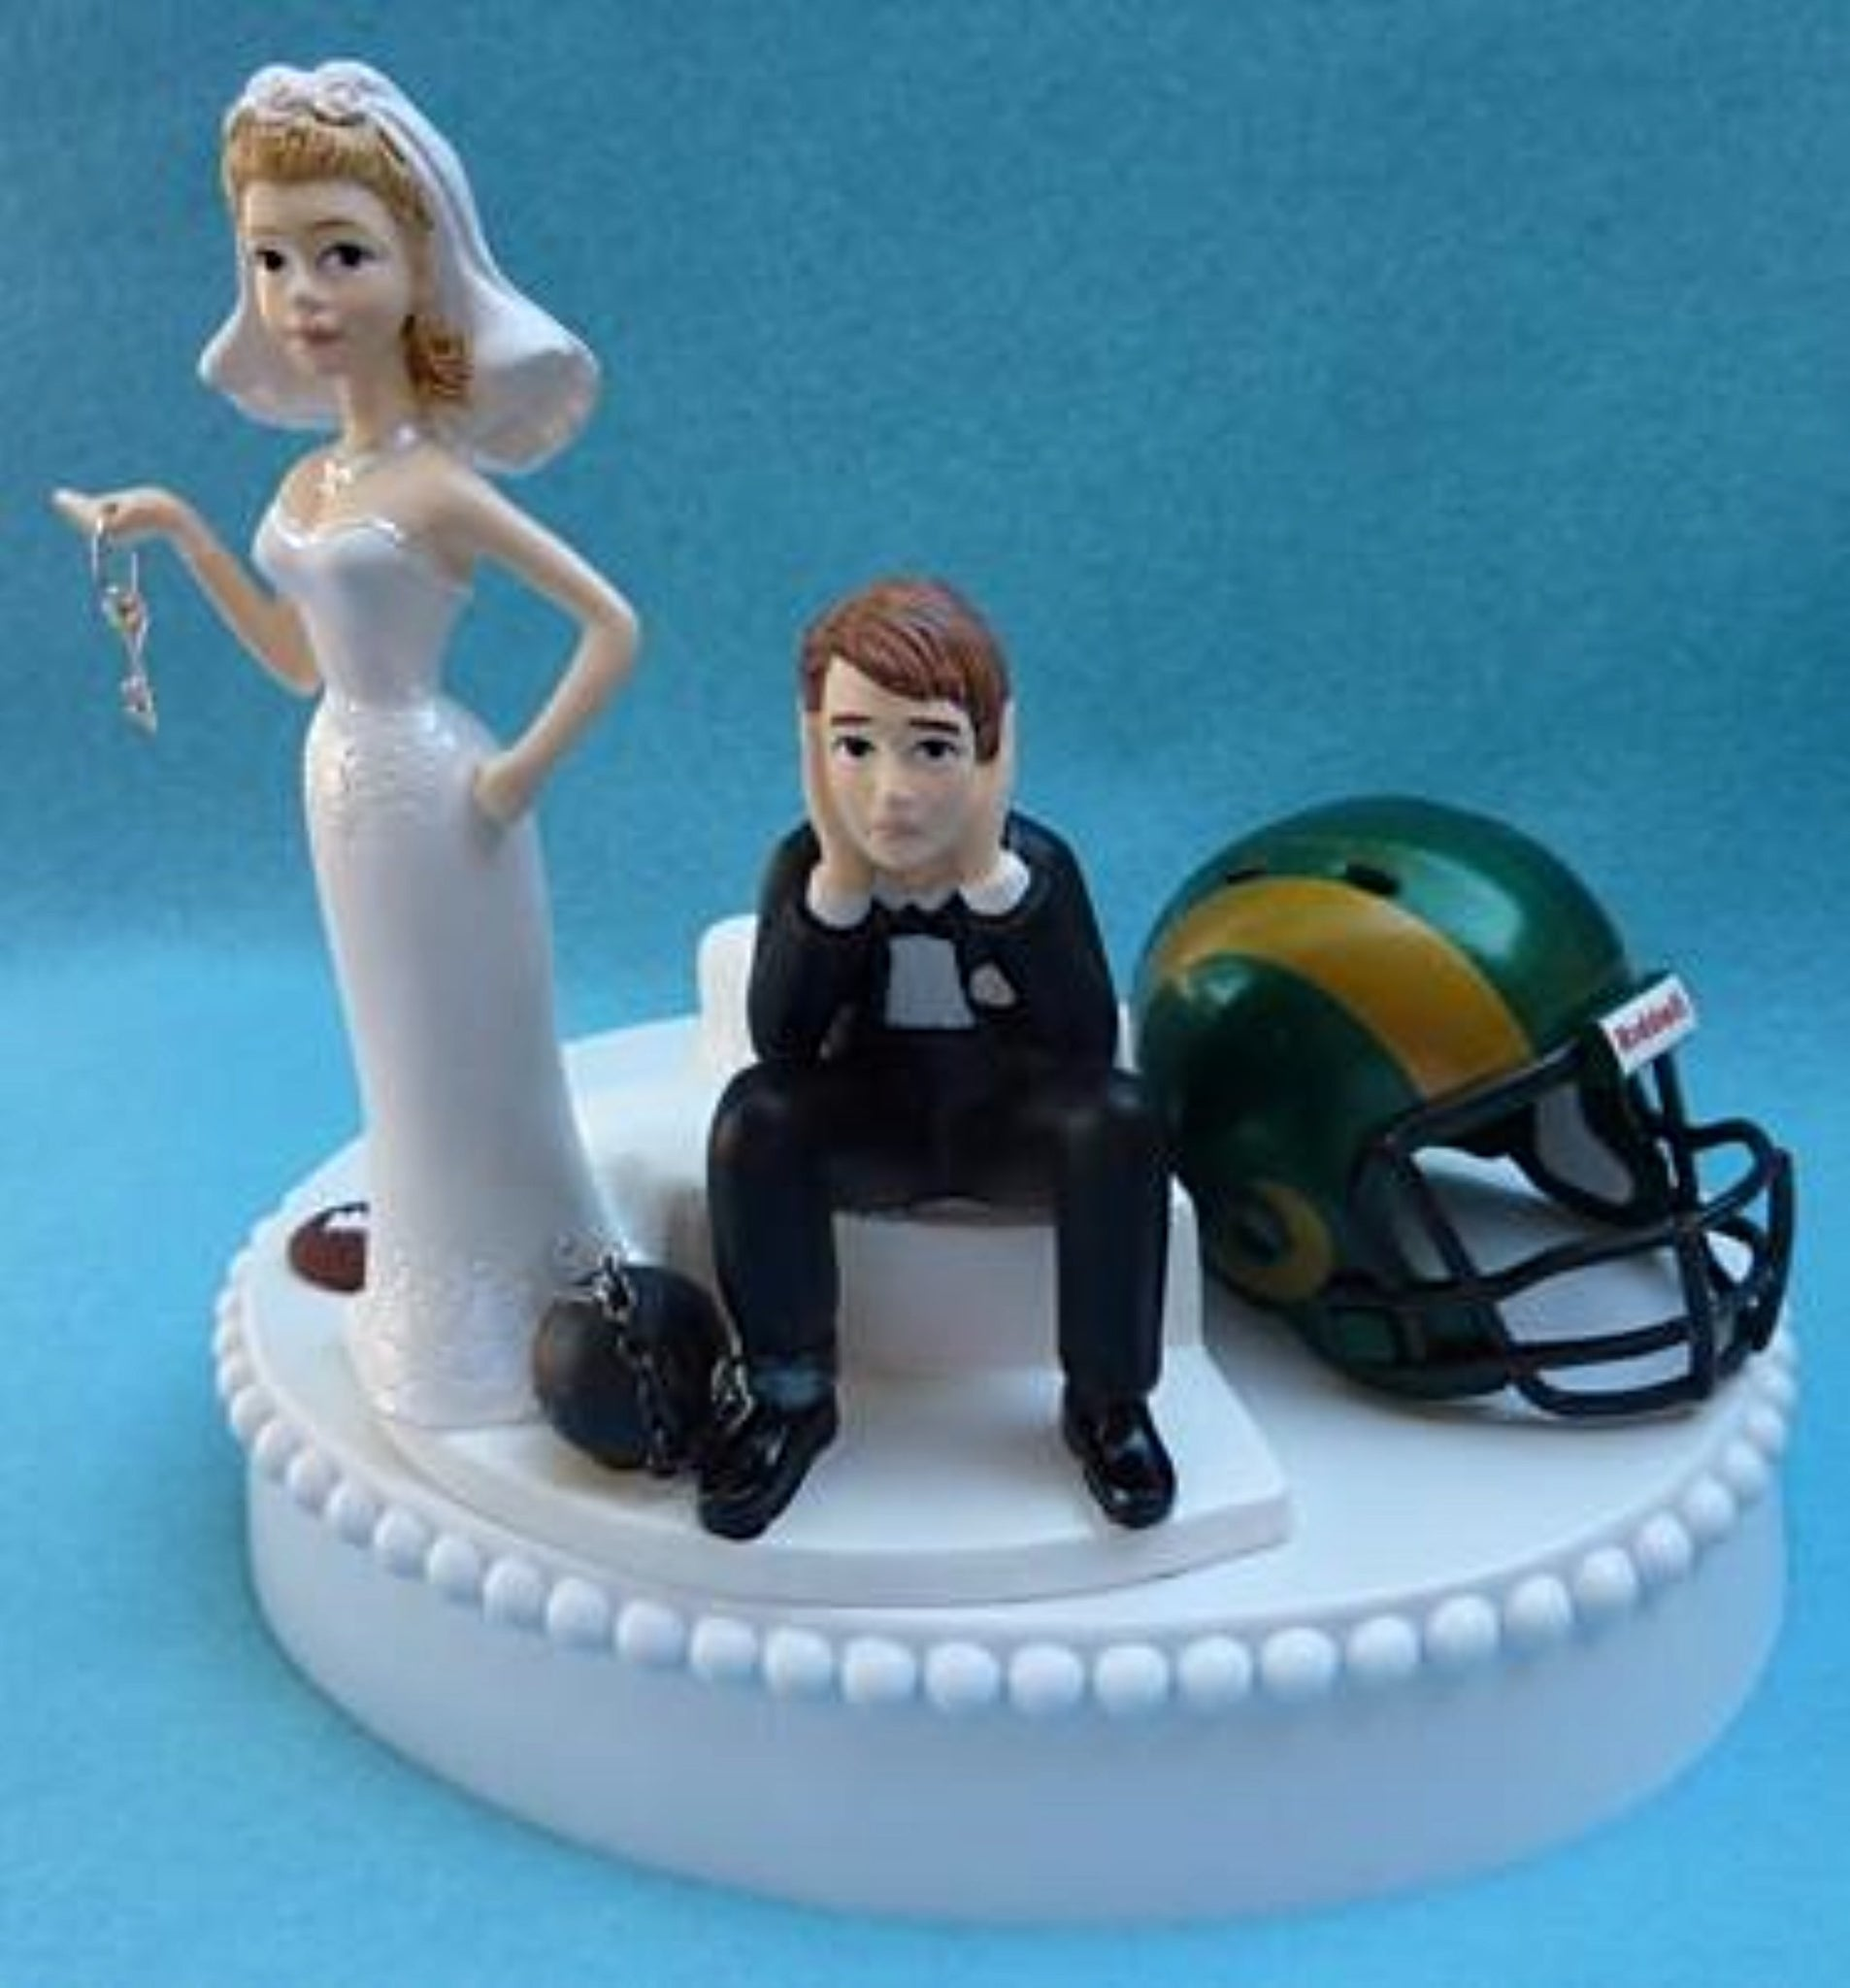 CSU Rams wedding cake topper Colorado St. University football bride sad groom humorous ball chain key funny sports fans Fun Wedding Things